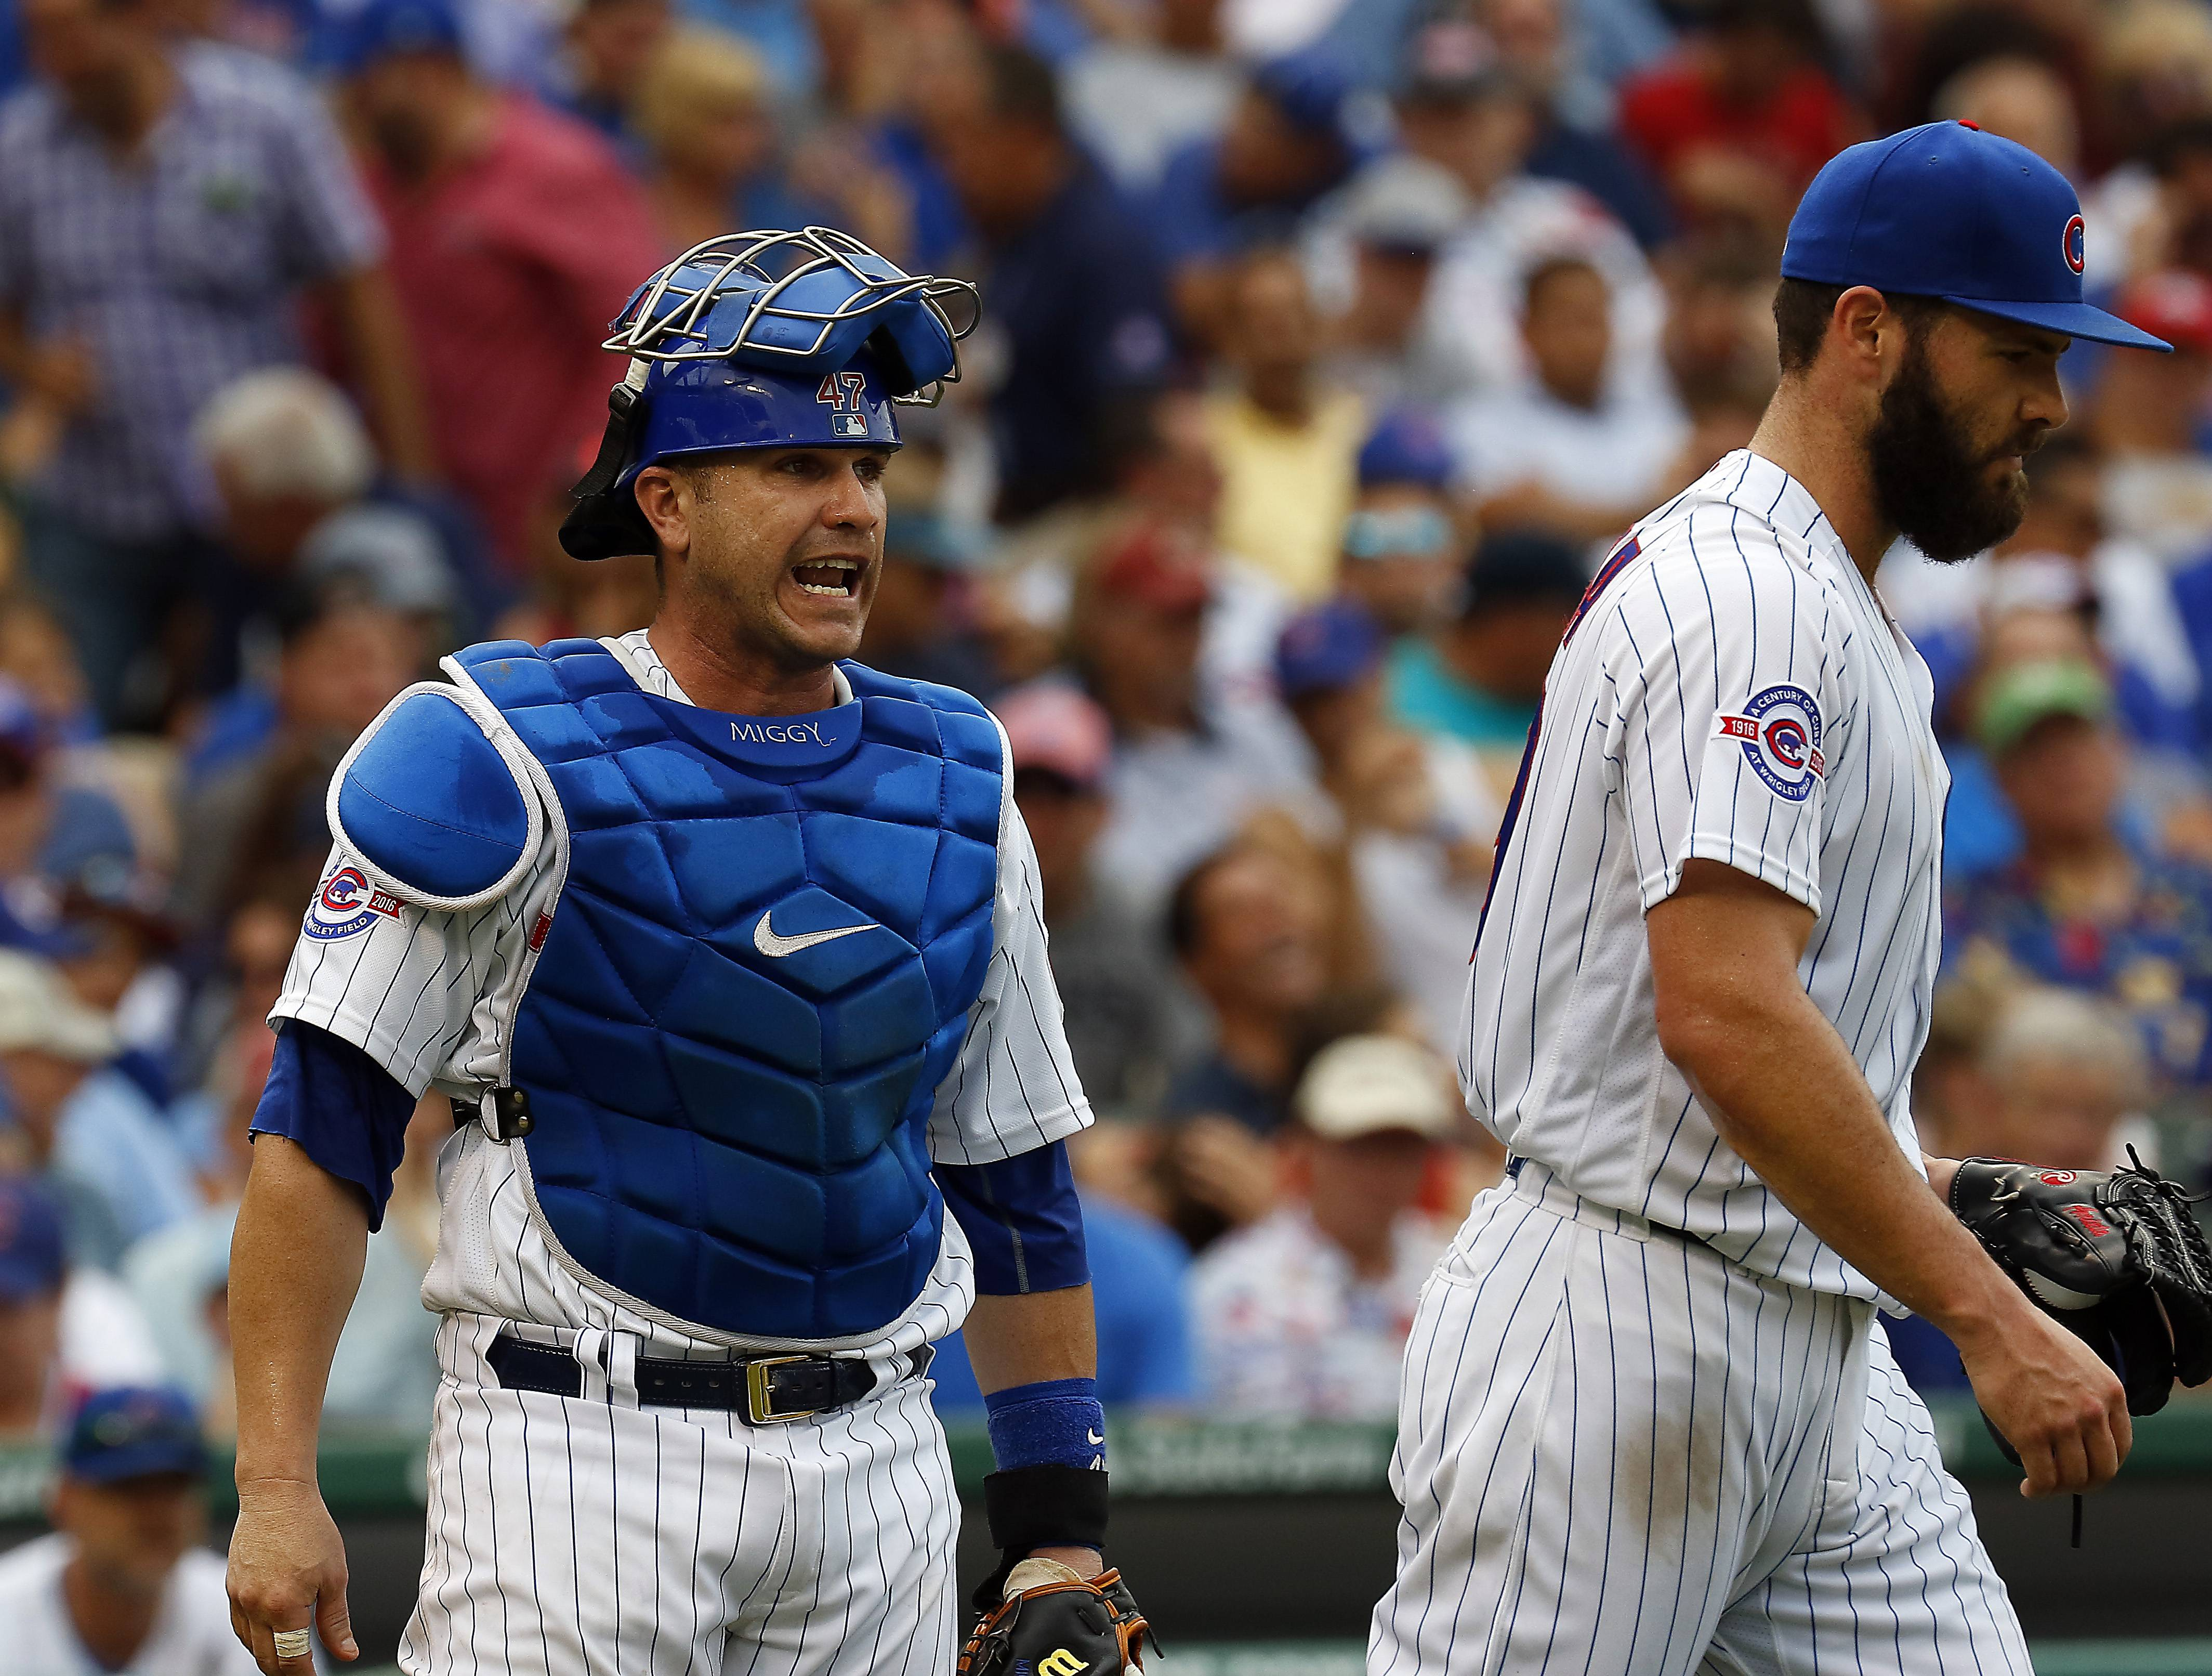 The Chicago Cubs have designated catcher Miguel Montero for release.